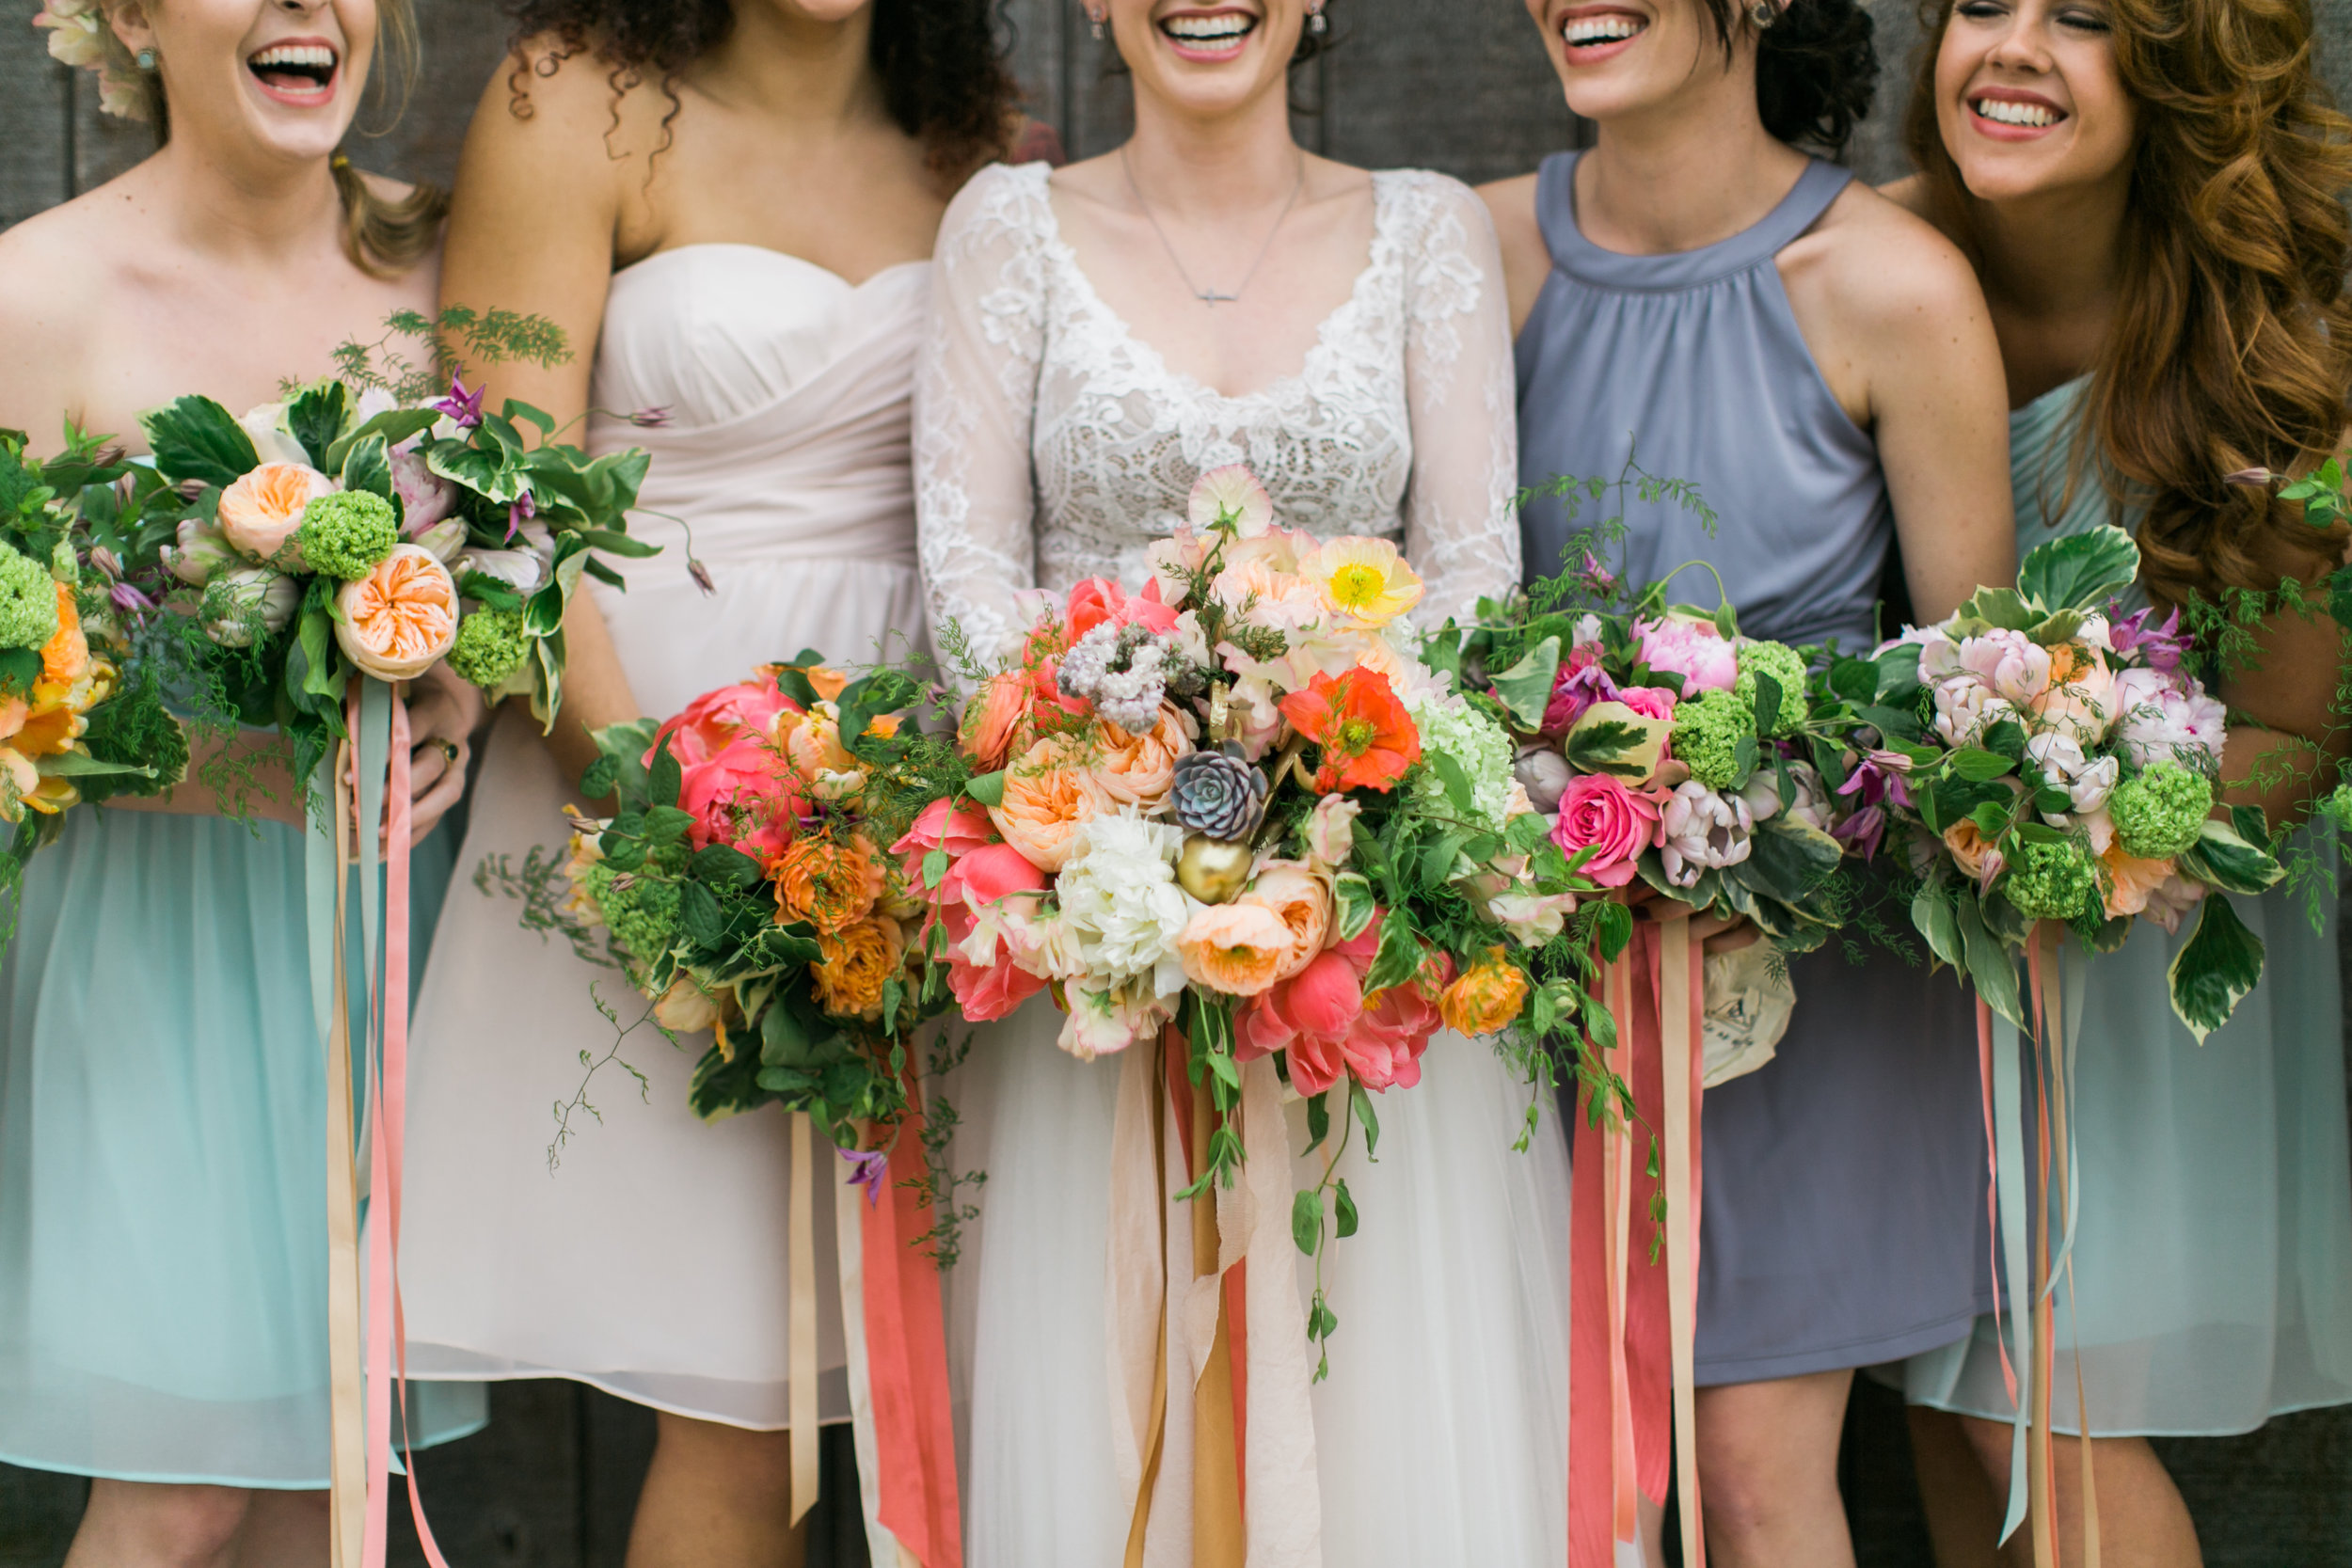 Amarillo Wedding coordination and design by Parie Designs, Bridesmaids bouquets and bridal bouquets